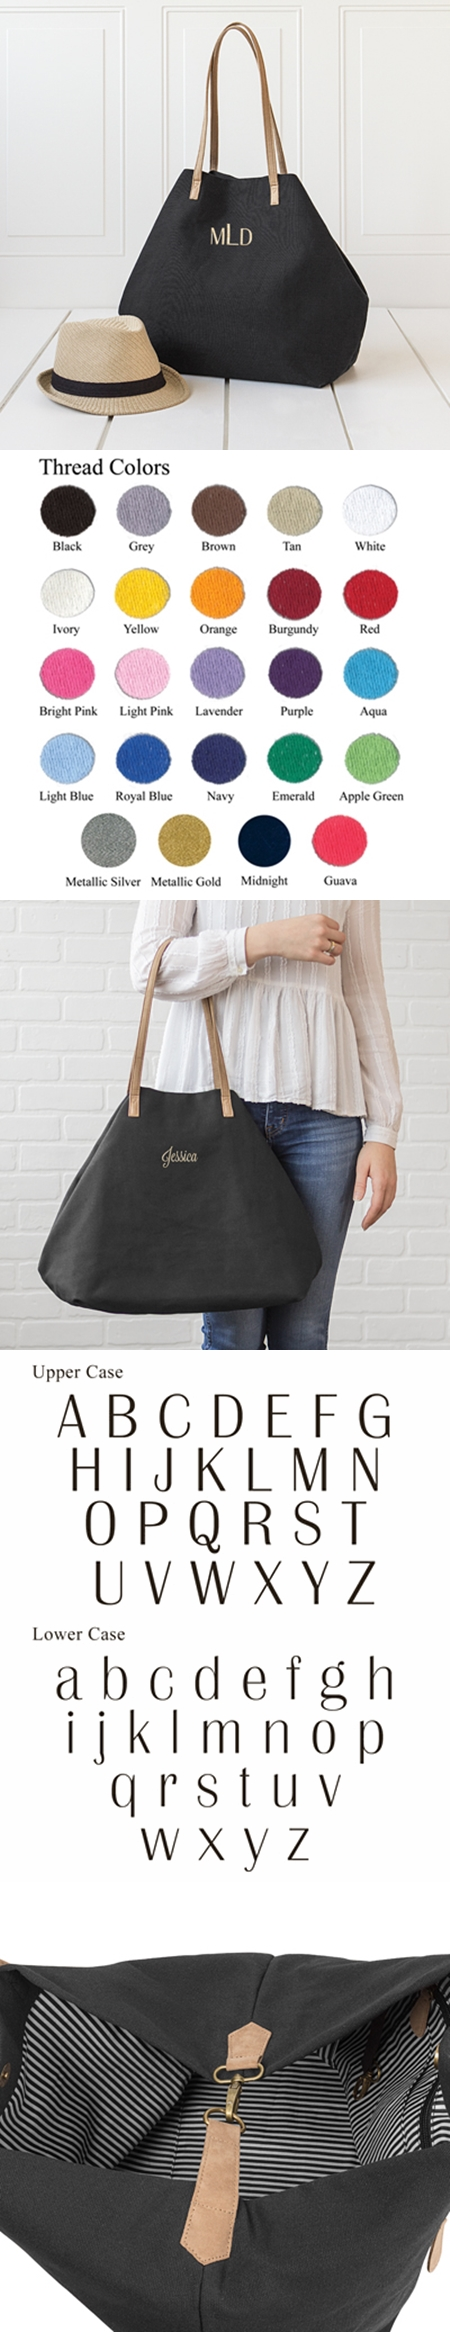 Cathy's Concepts Personalizable Black Canvas Overnight Tote